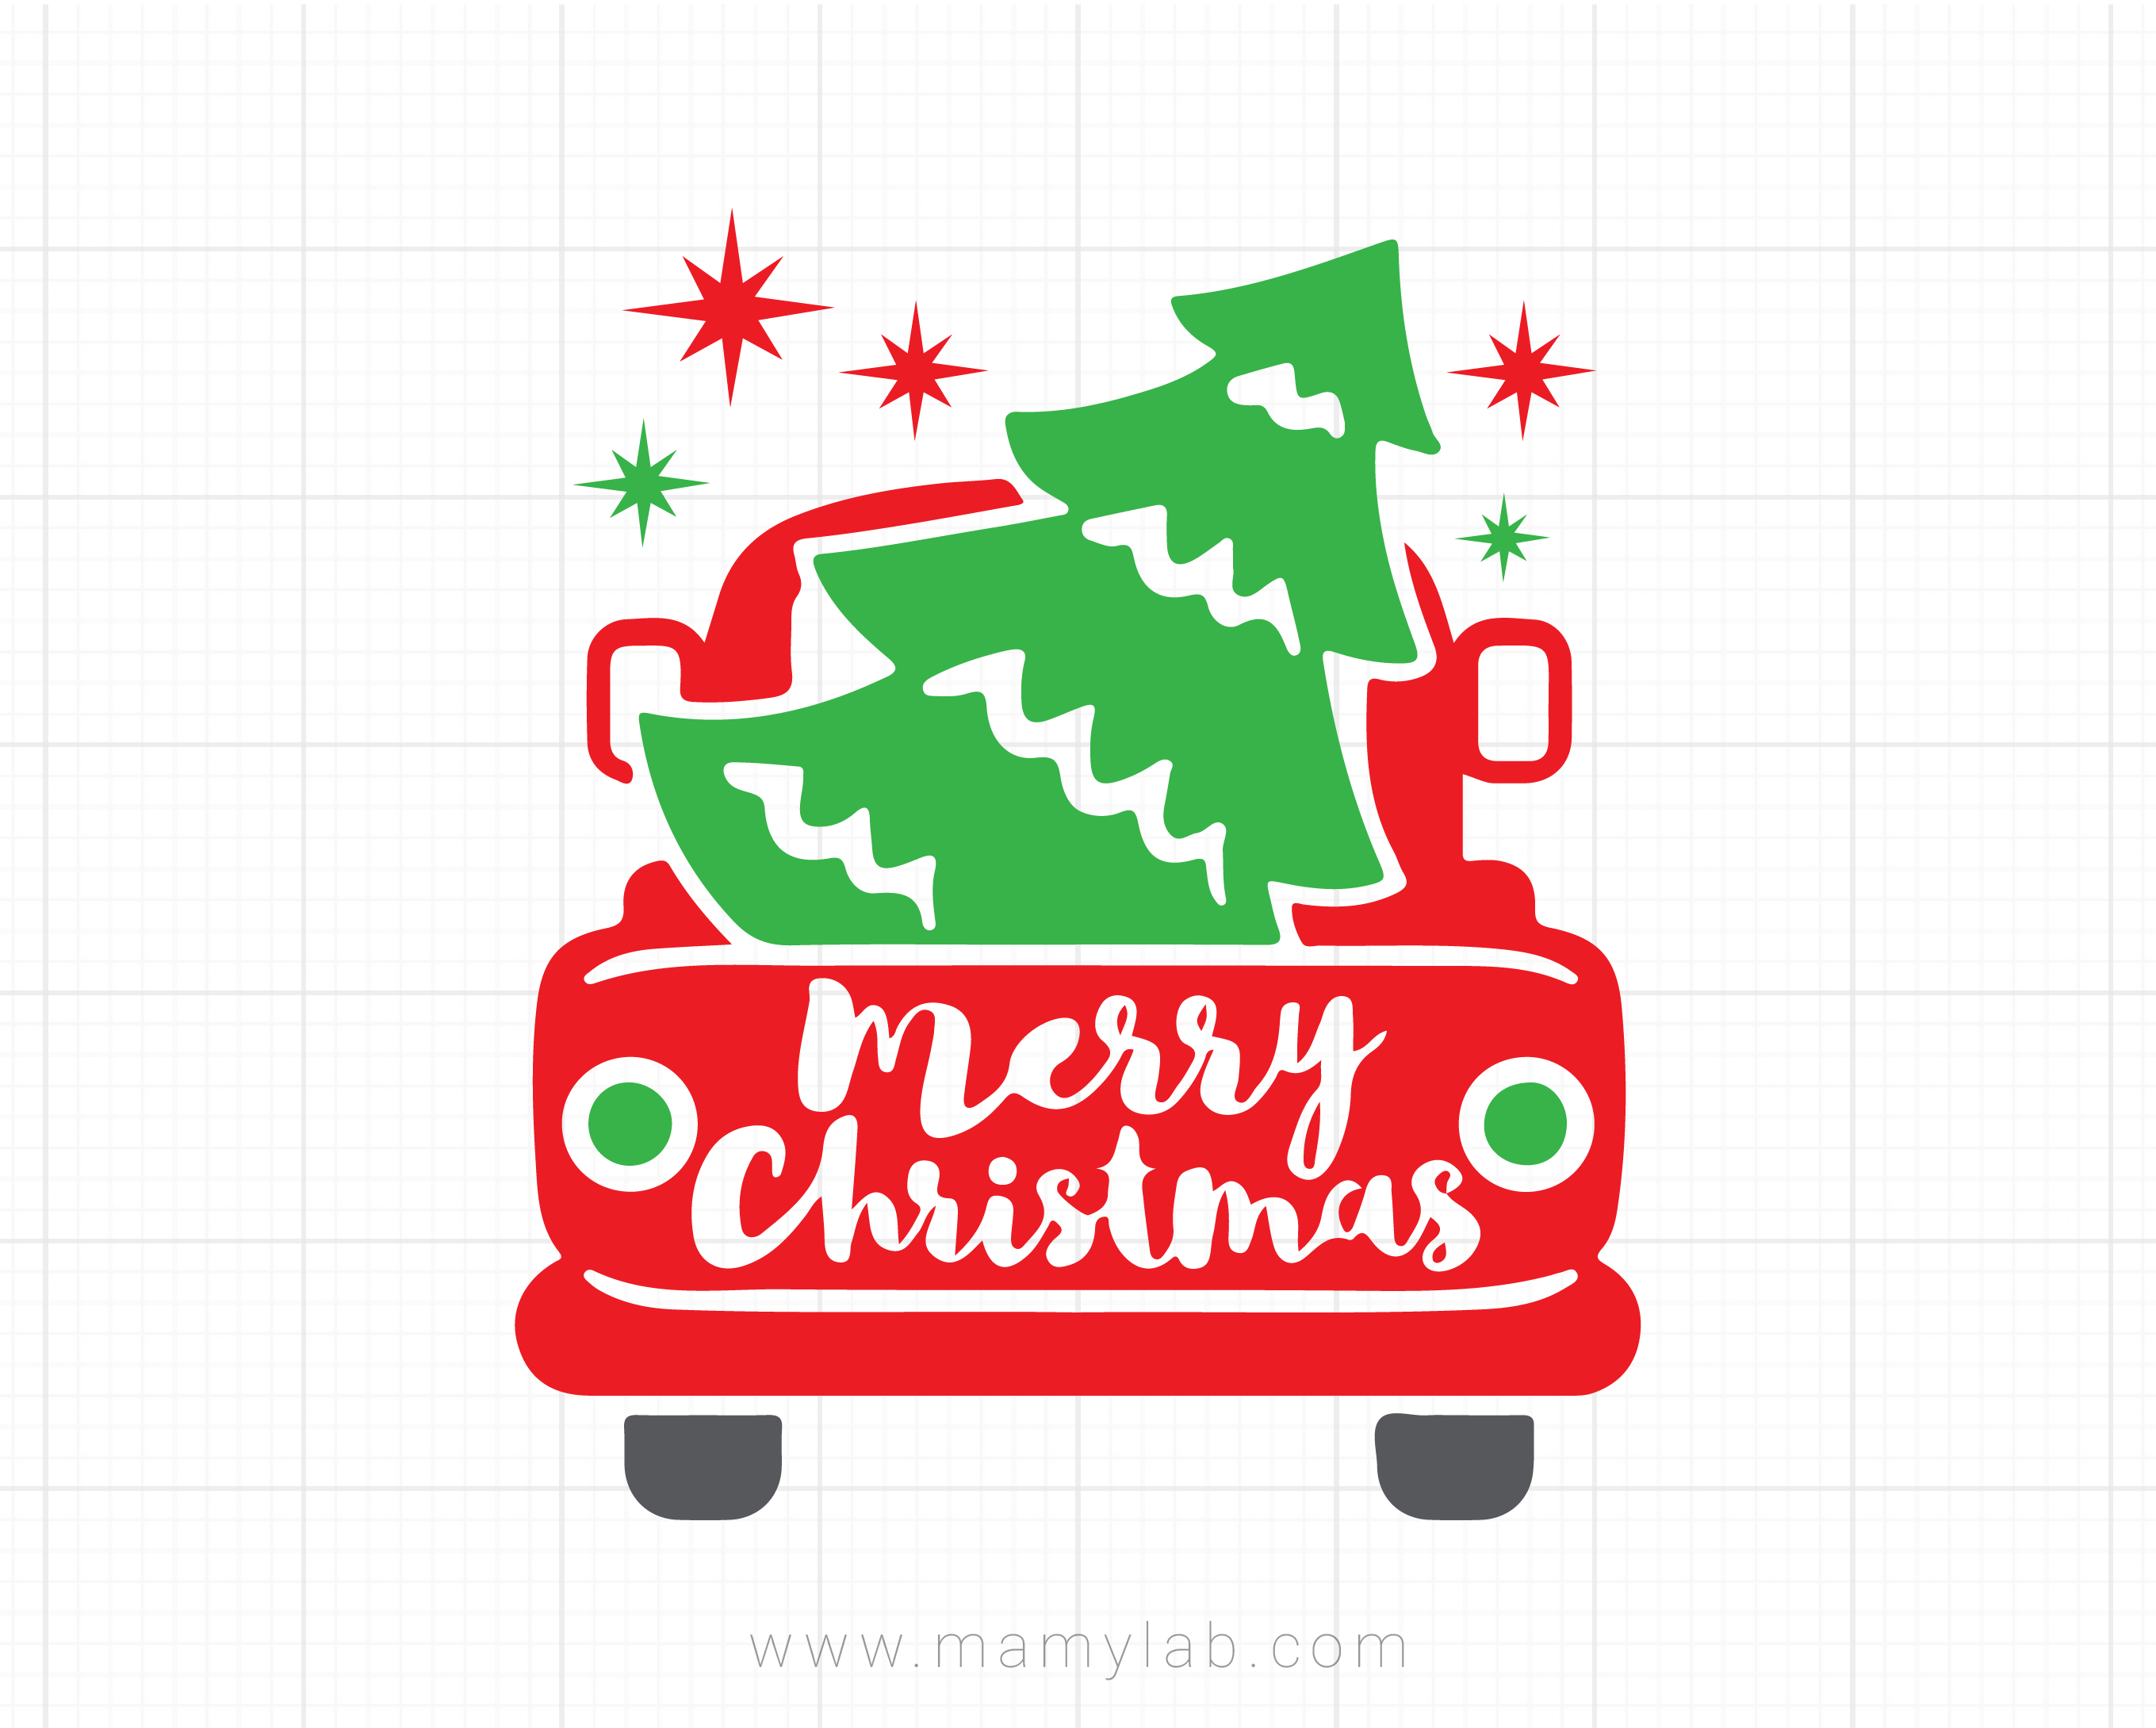 Christmas Truck Svg, Red Truck with Tree Svg, Merry Christmas Svg, Dxf,  Png, Winter Holiday Cut Files, Xmas Clipart, Silhouette, Cricut.